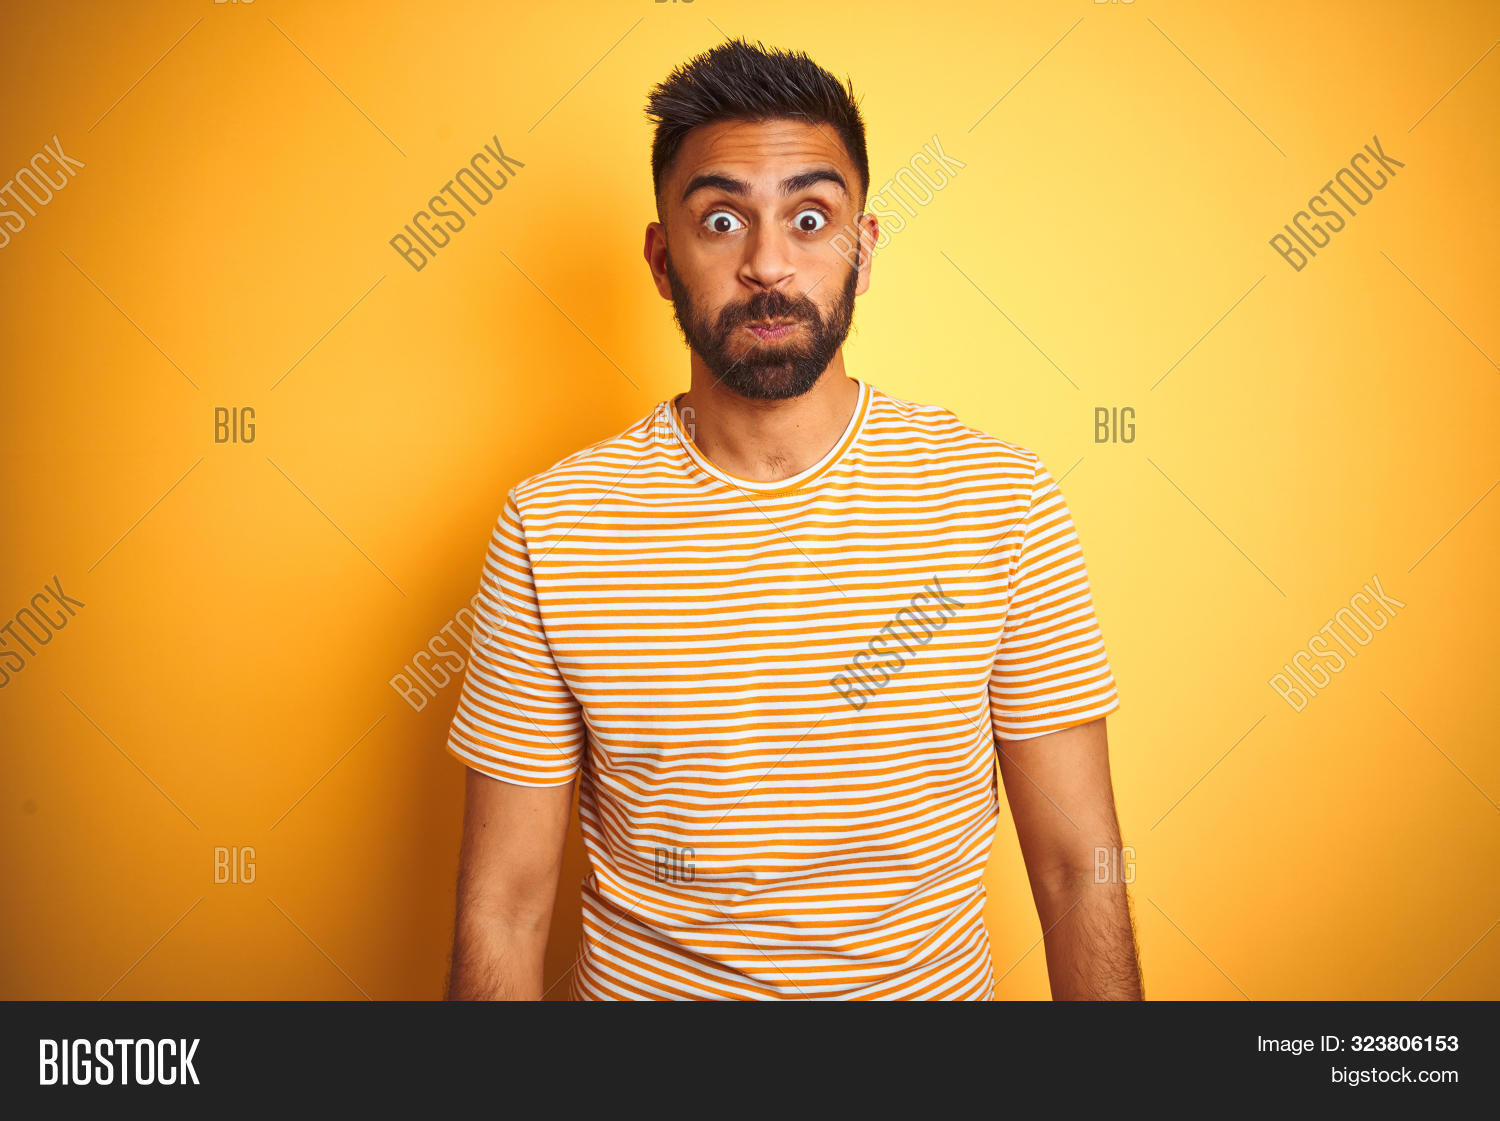 Young indian man wearing t-shirt standing over isolated yellow background puffing cheeks with funny face. Mouth inflated with air, crazy expression.